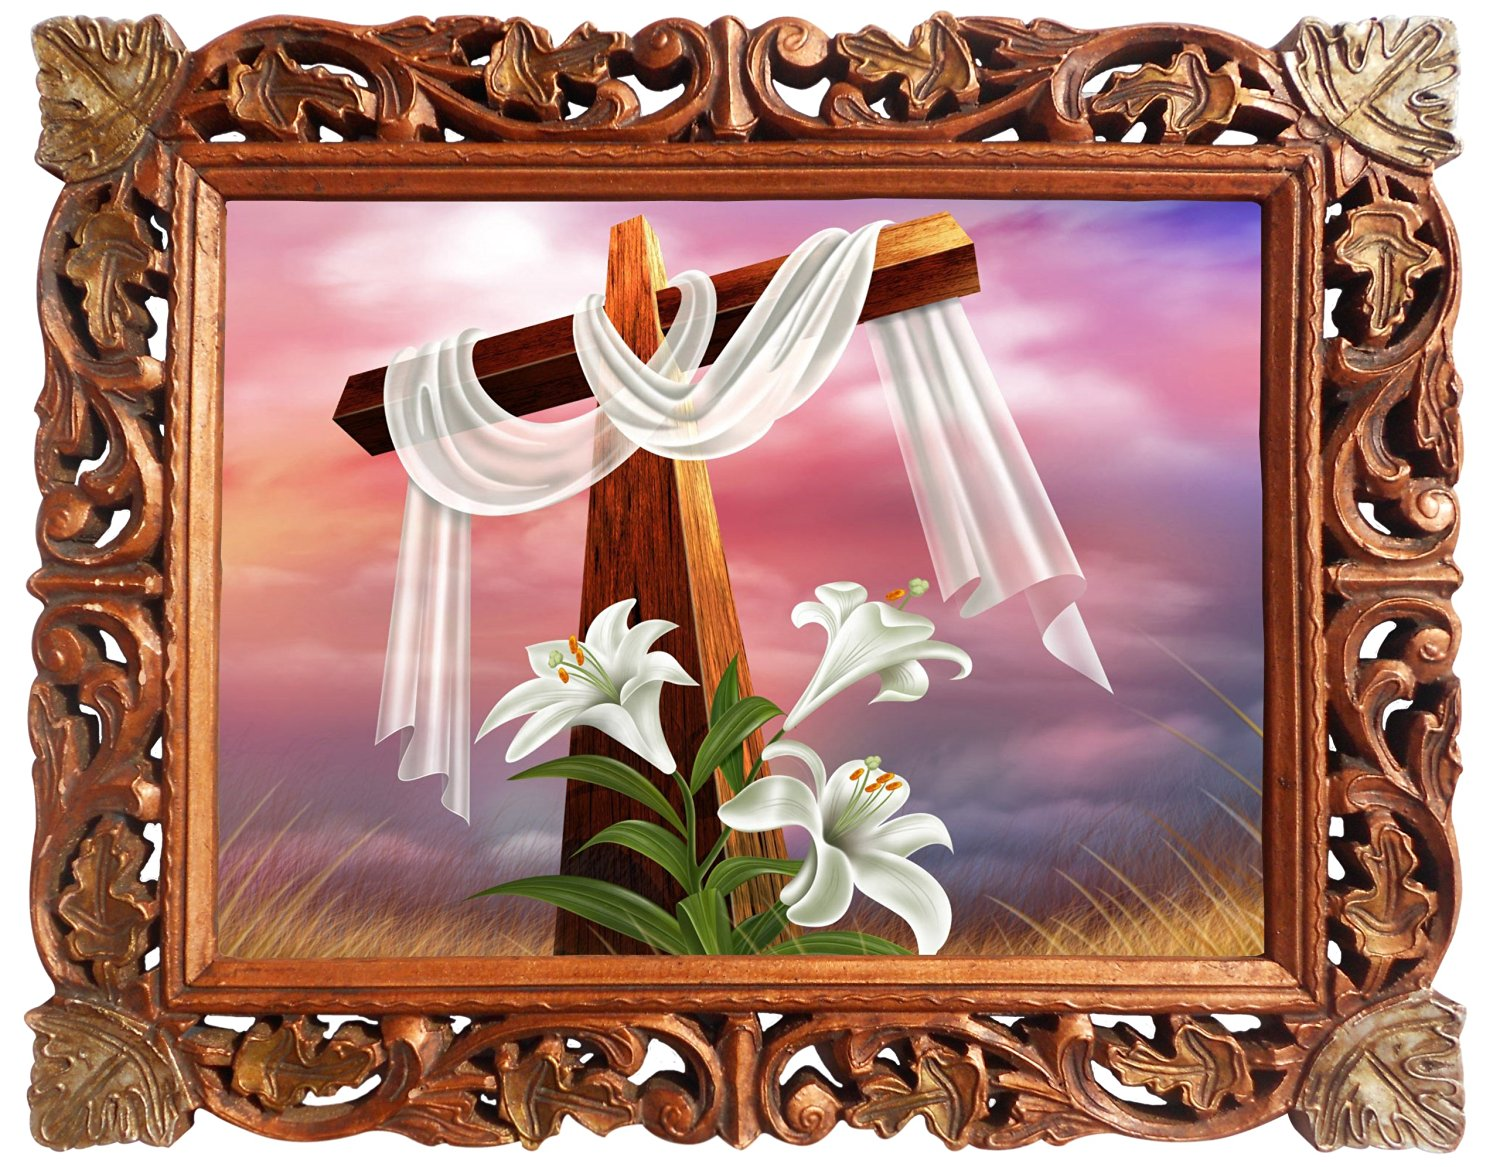 Buy Christmas Cross, Poster Framed in Wood Craft Frame, Indian Wood ...